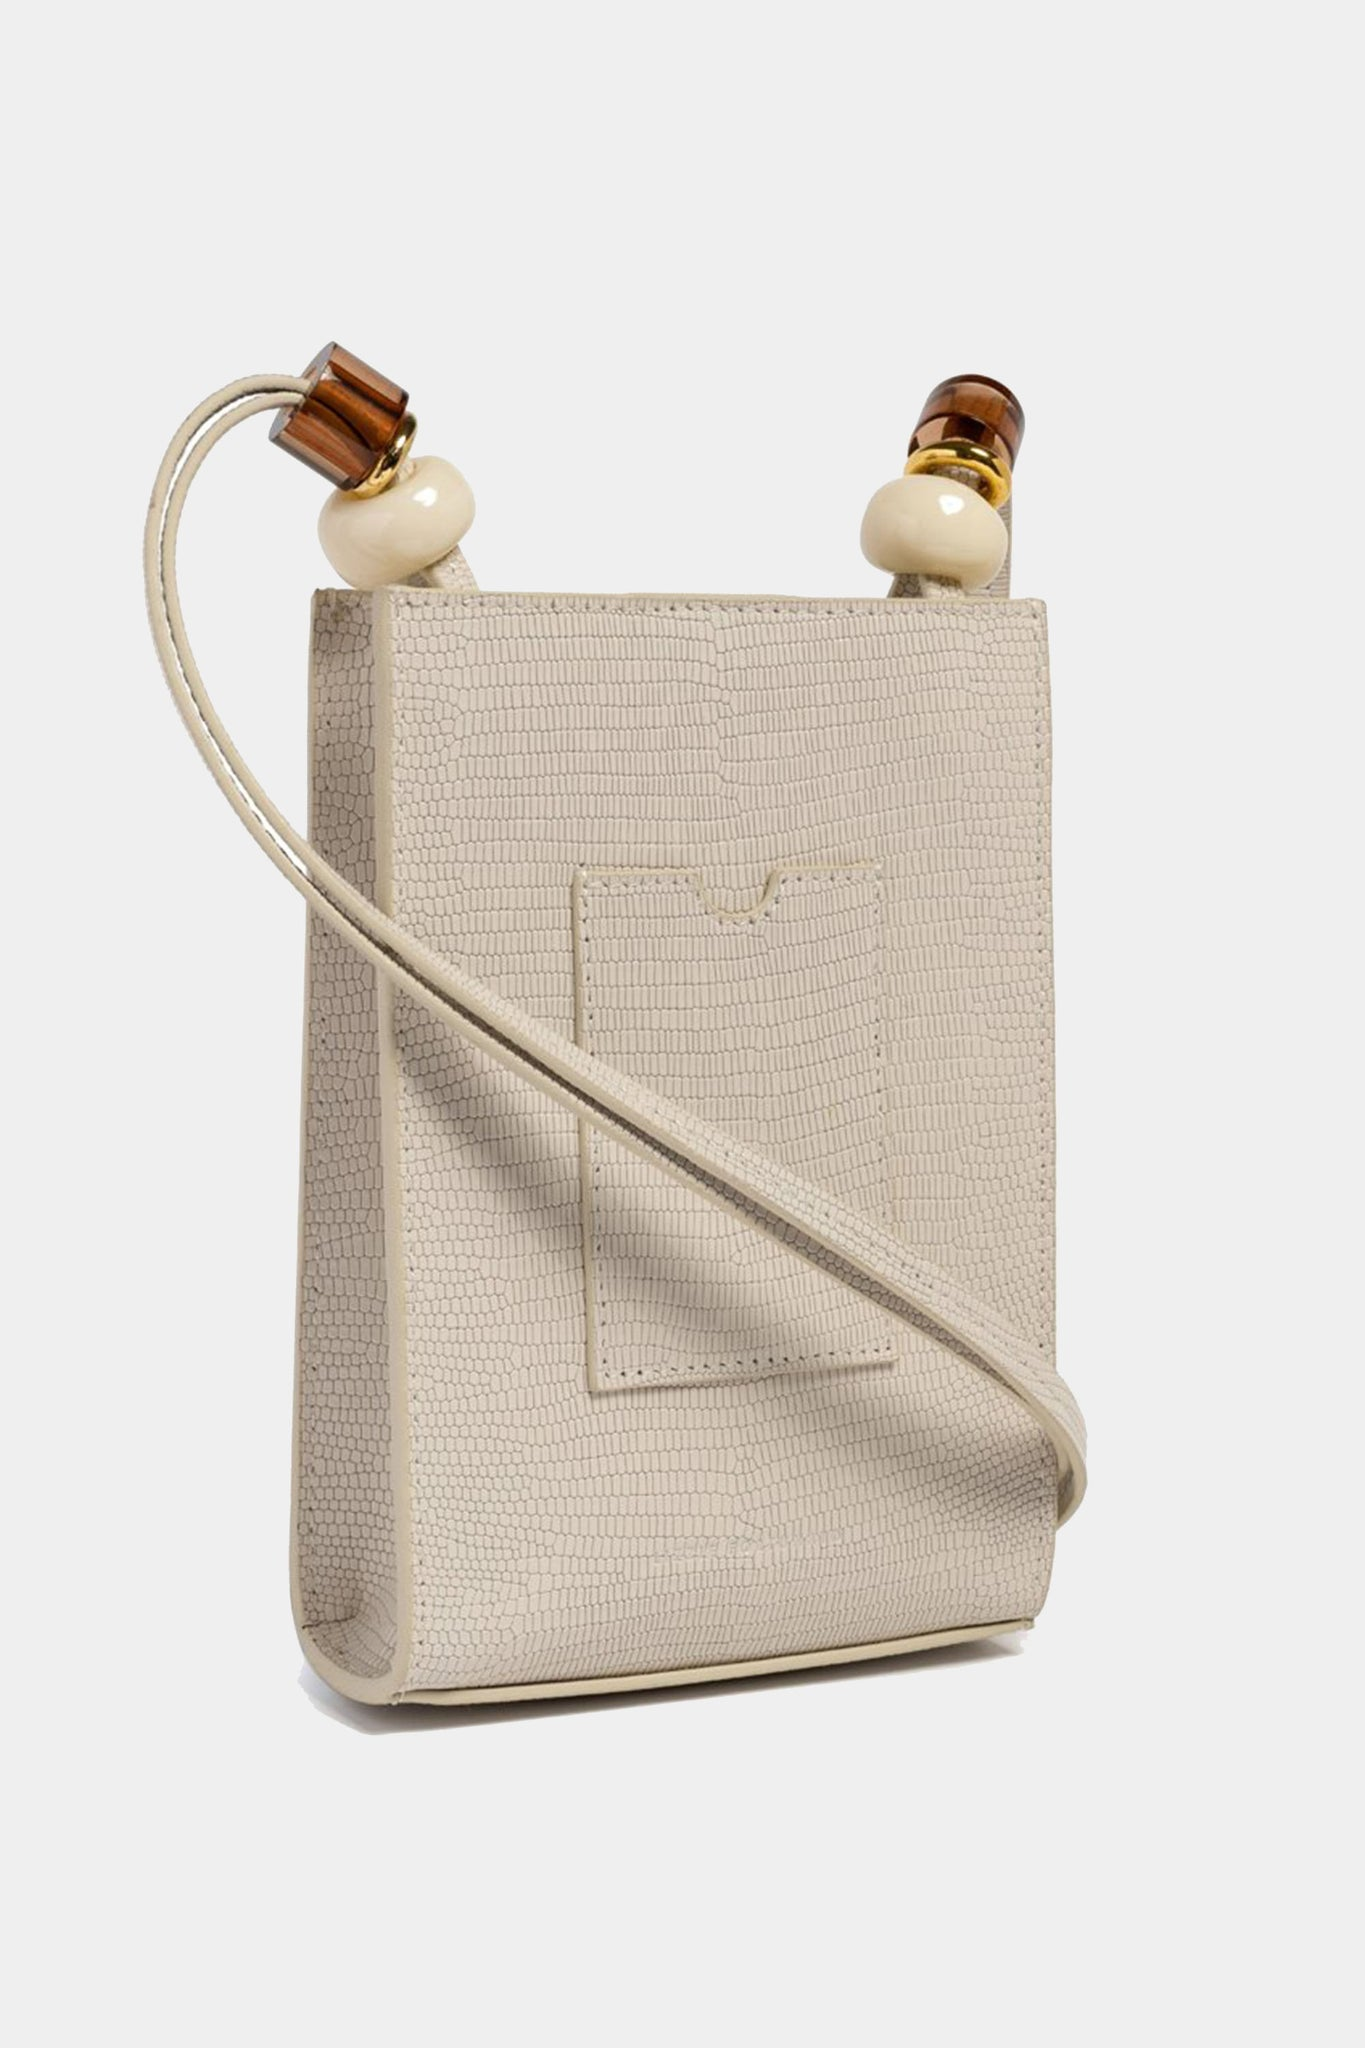 Lizzie Fortunato - ruby bag in lizard, white